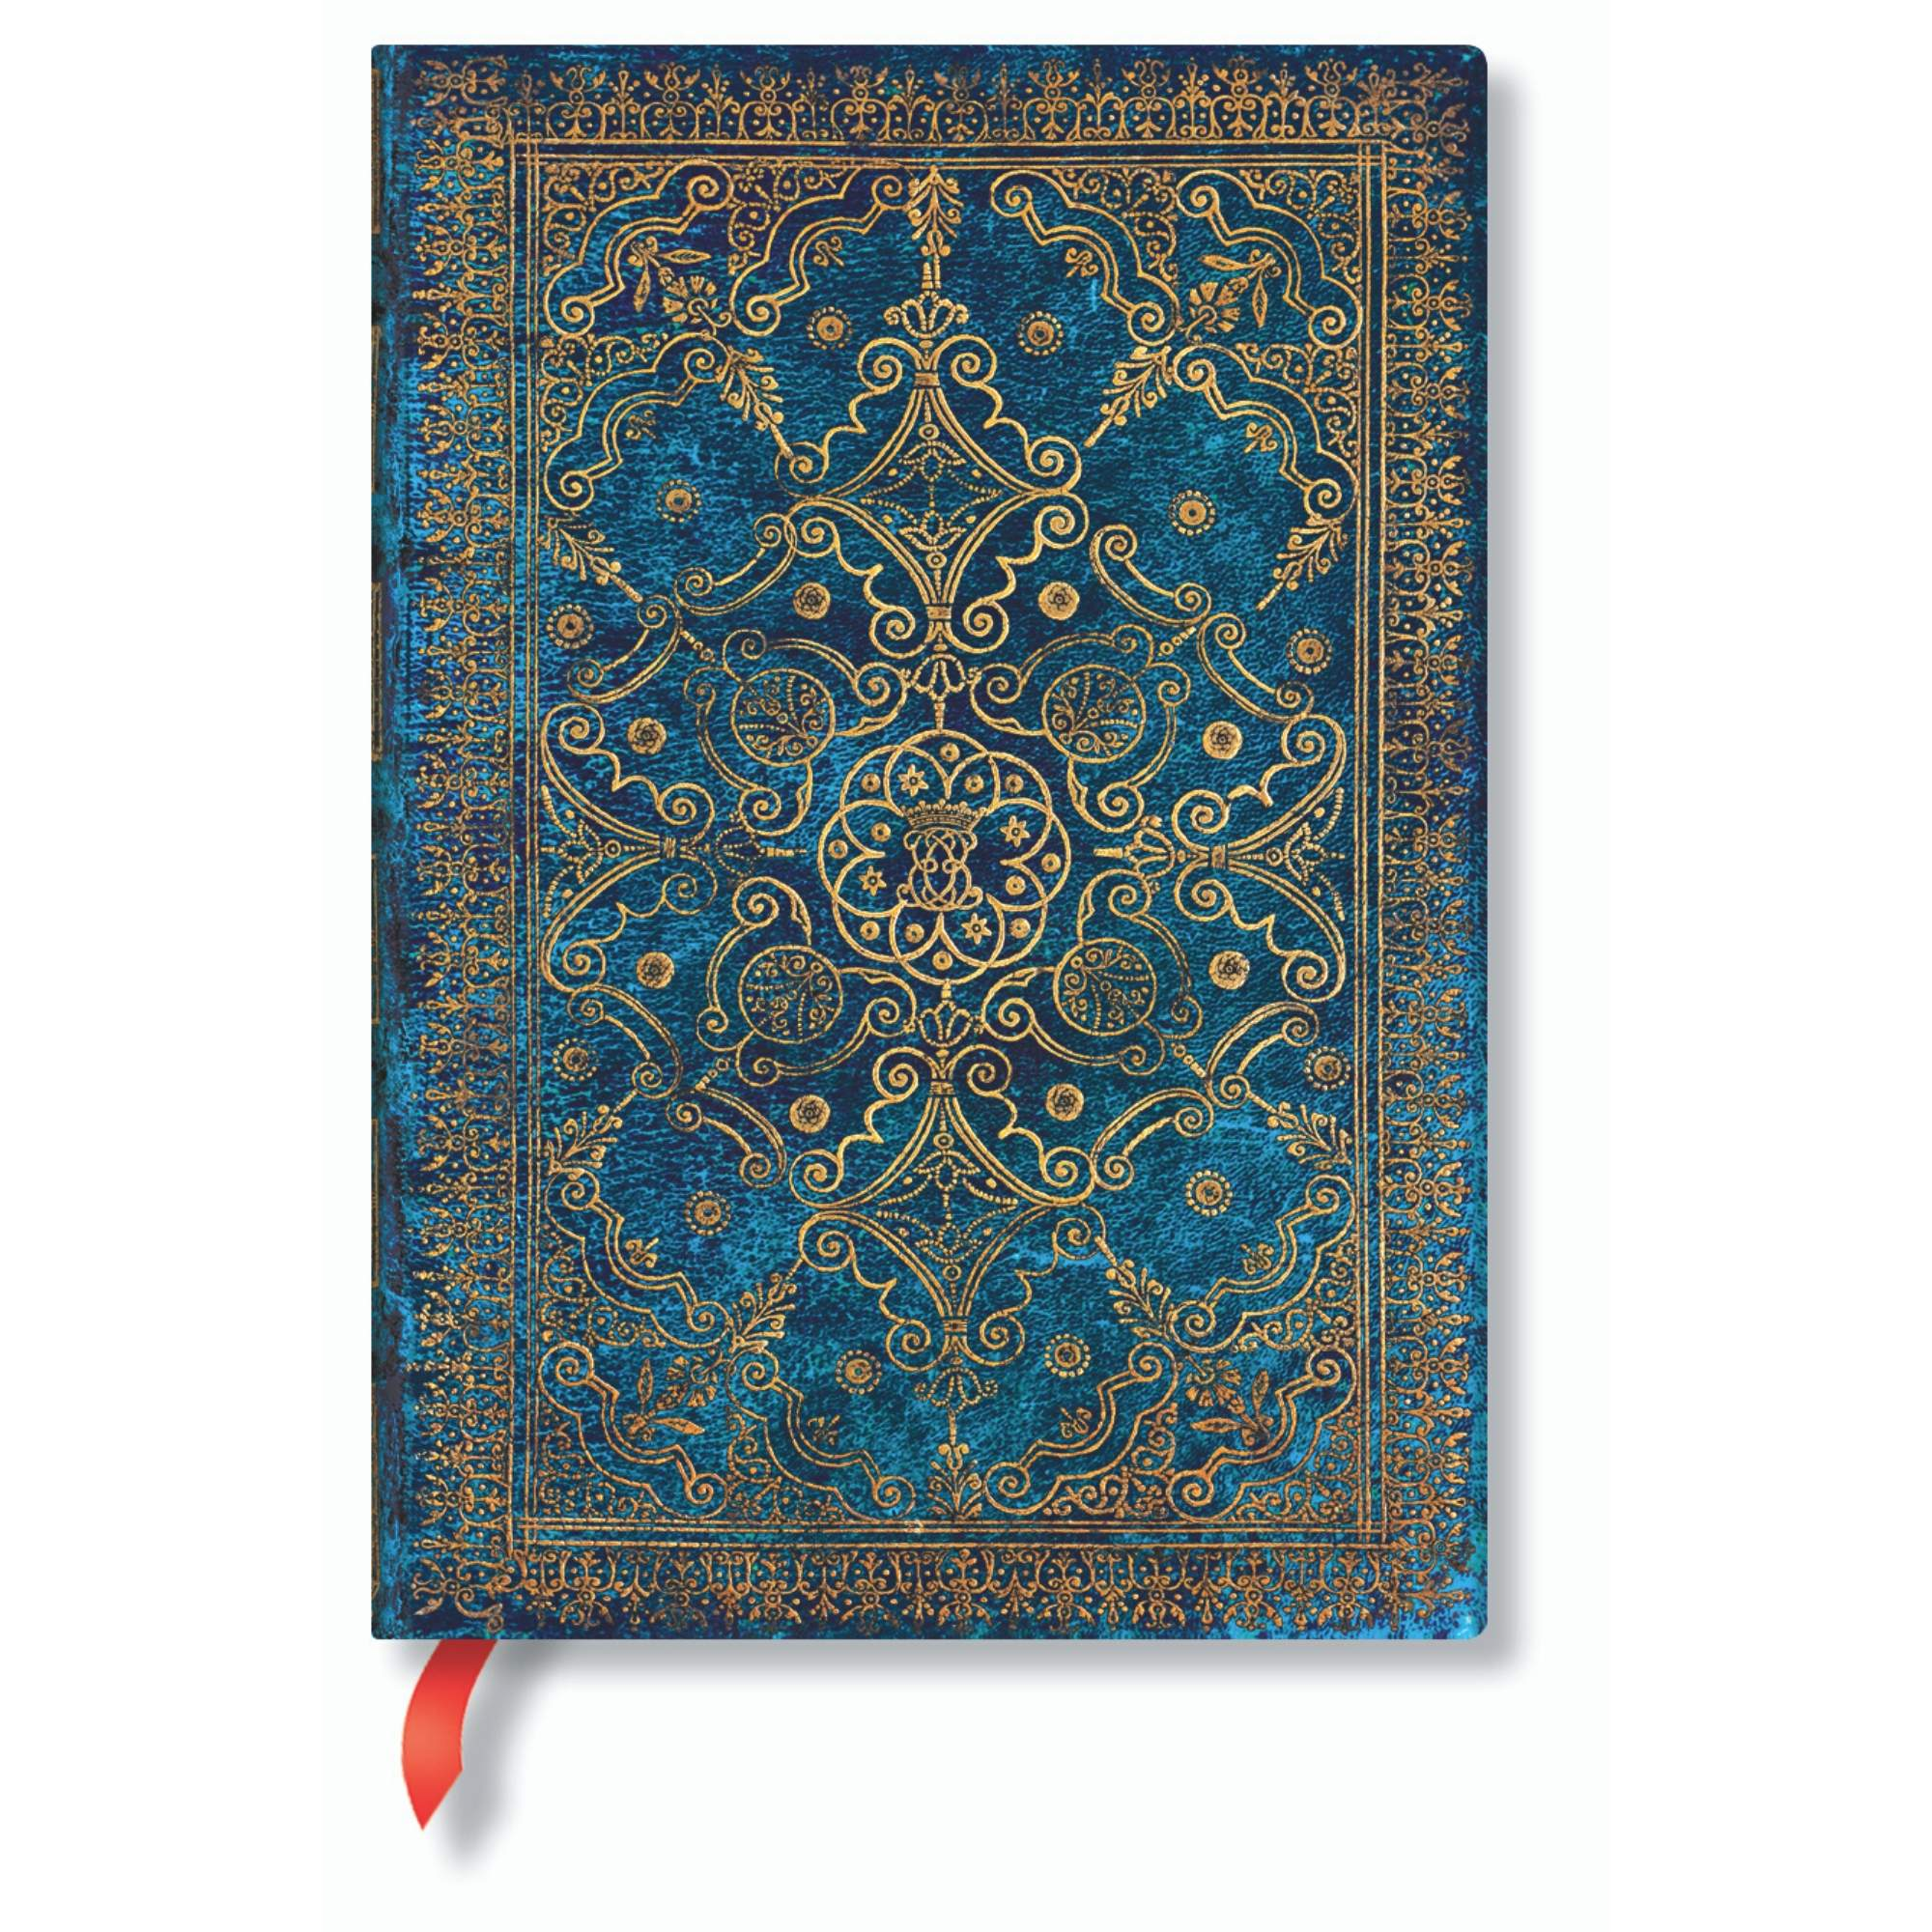 Paperblanks Signature Editions Azure Midi Journal 5 x 7 Inch